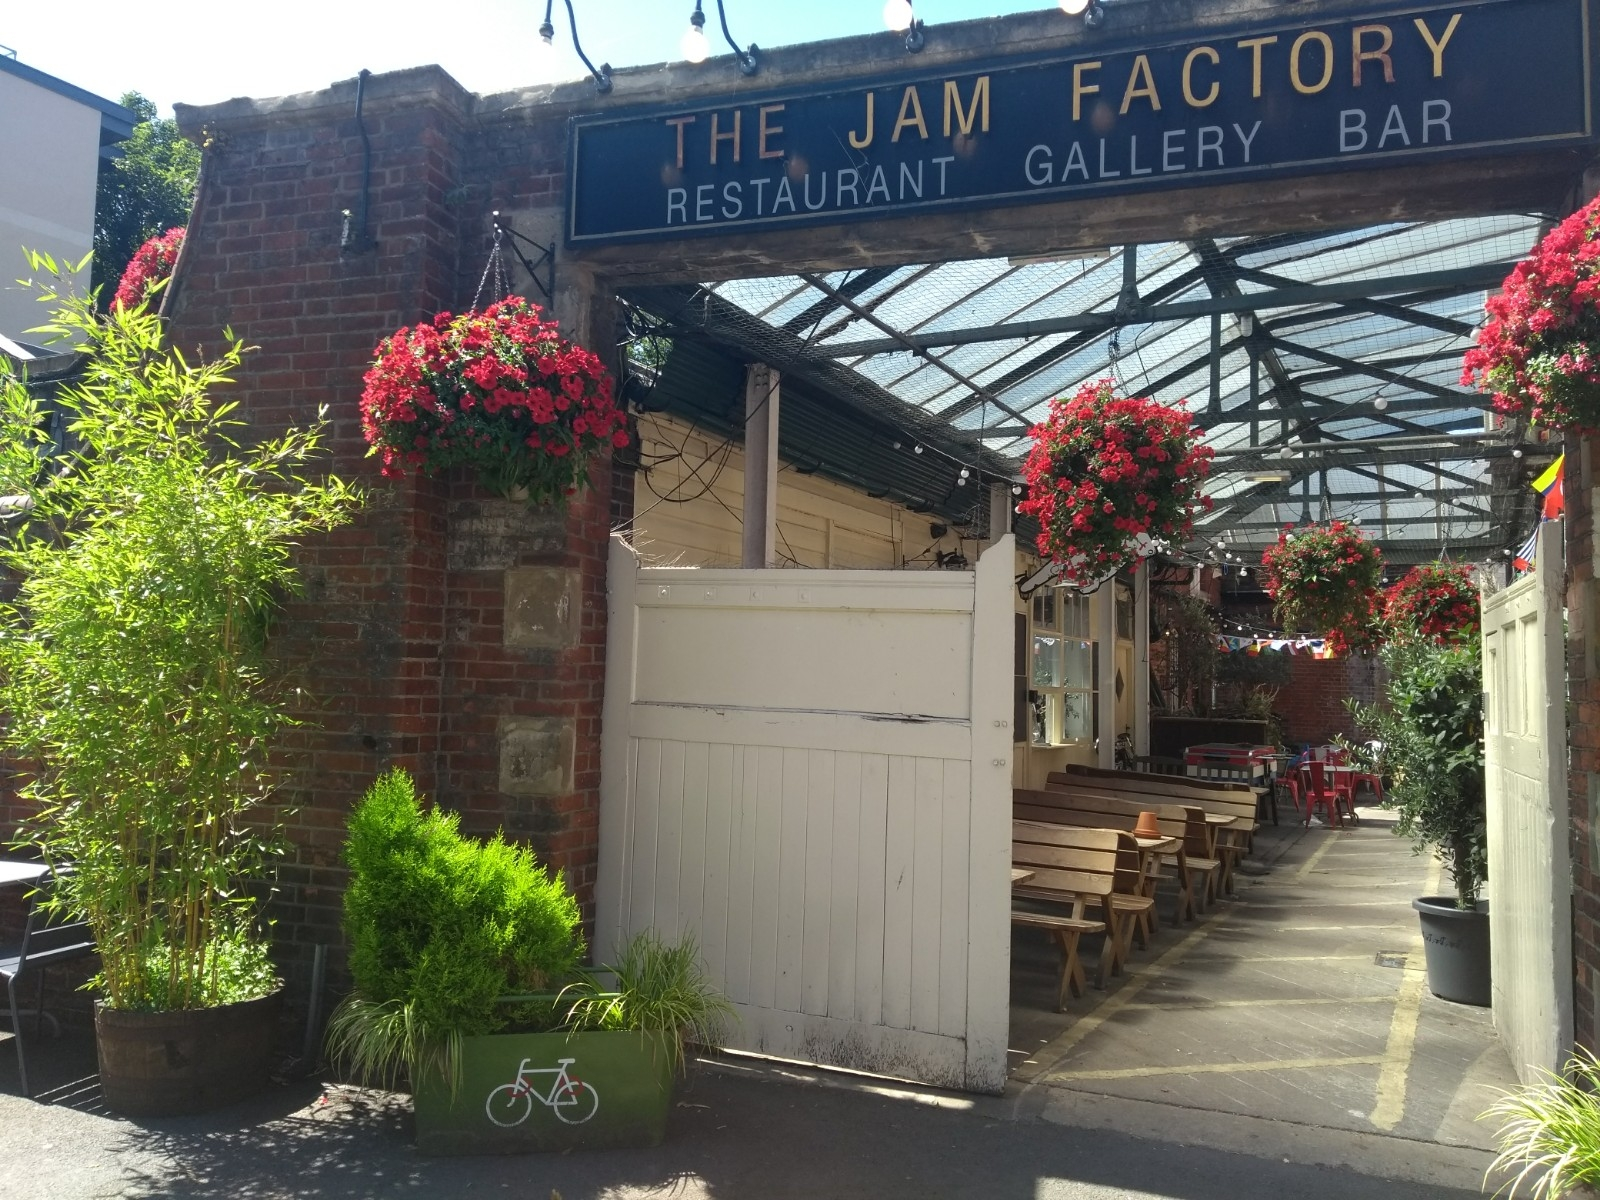 Jam Factory - You can fill up your water bottle and use the loo here free of charge, what a great socially minded cafe!Hollybush Row, OX1 1HUwww.thejamfactoryoxford.com